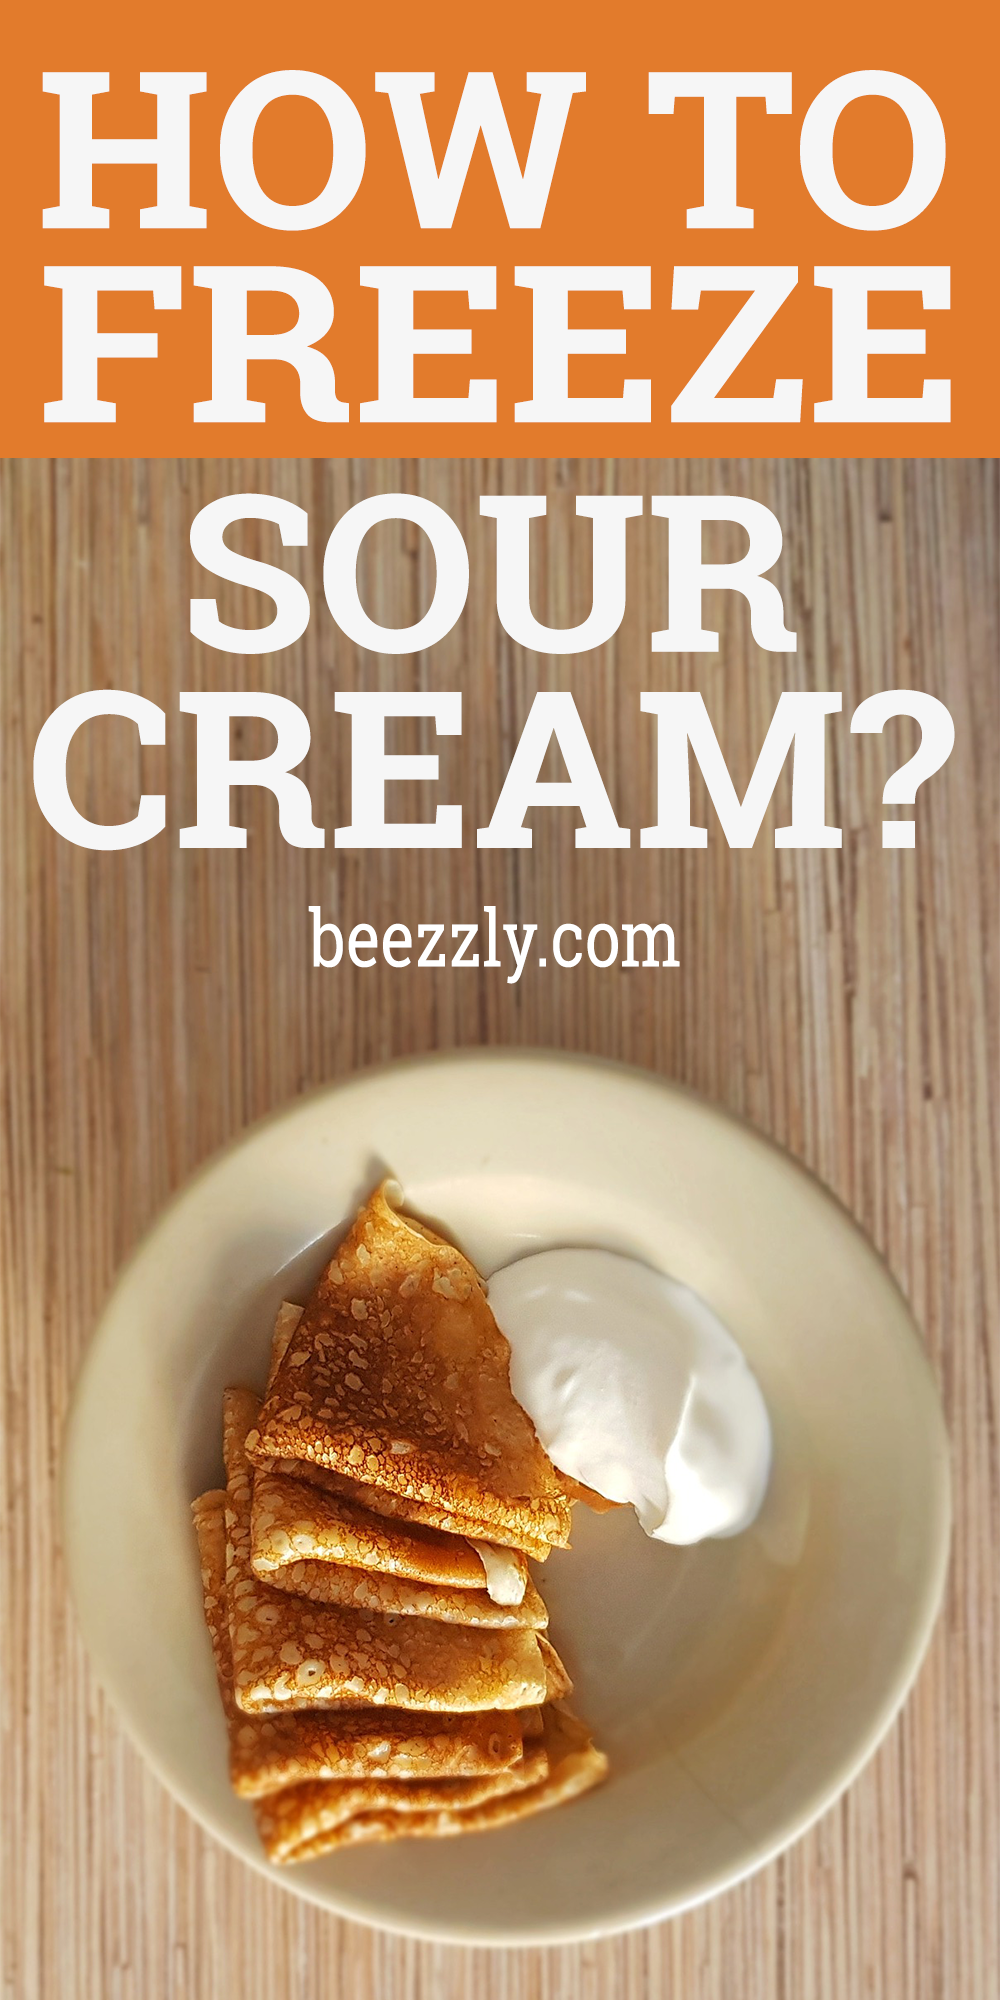 How To Freeze Sour Cream In 2020 Sour Cream Cooking Tasty Dishes